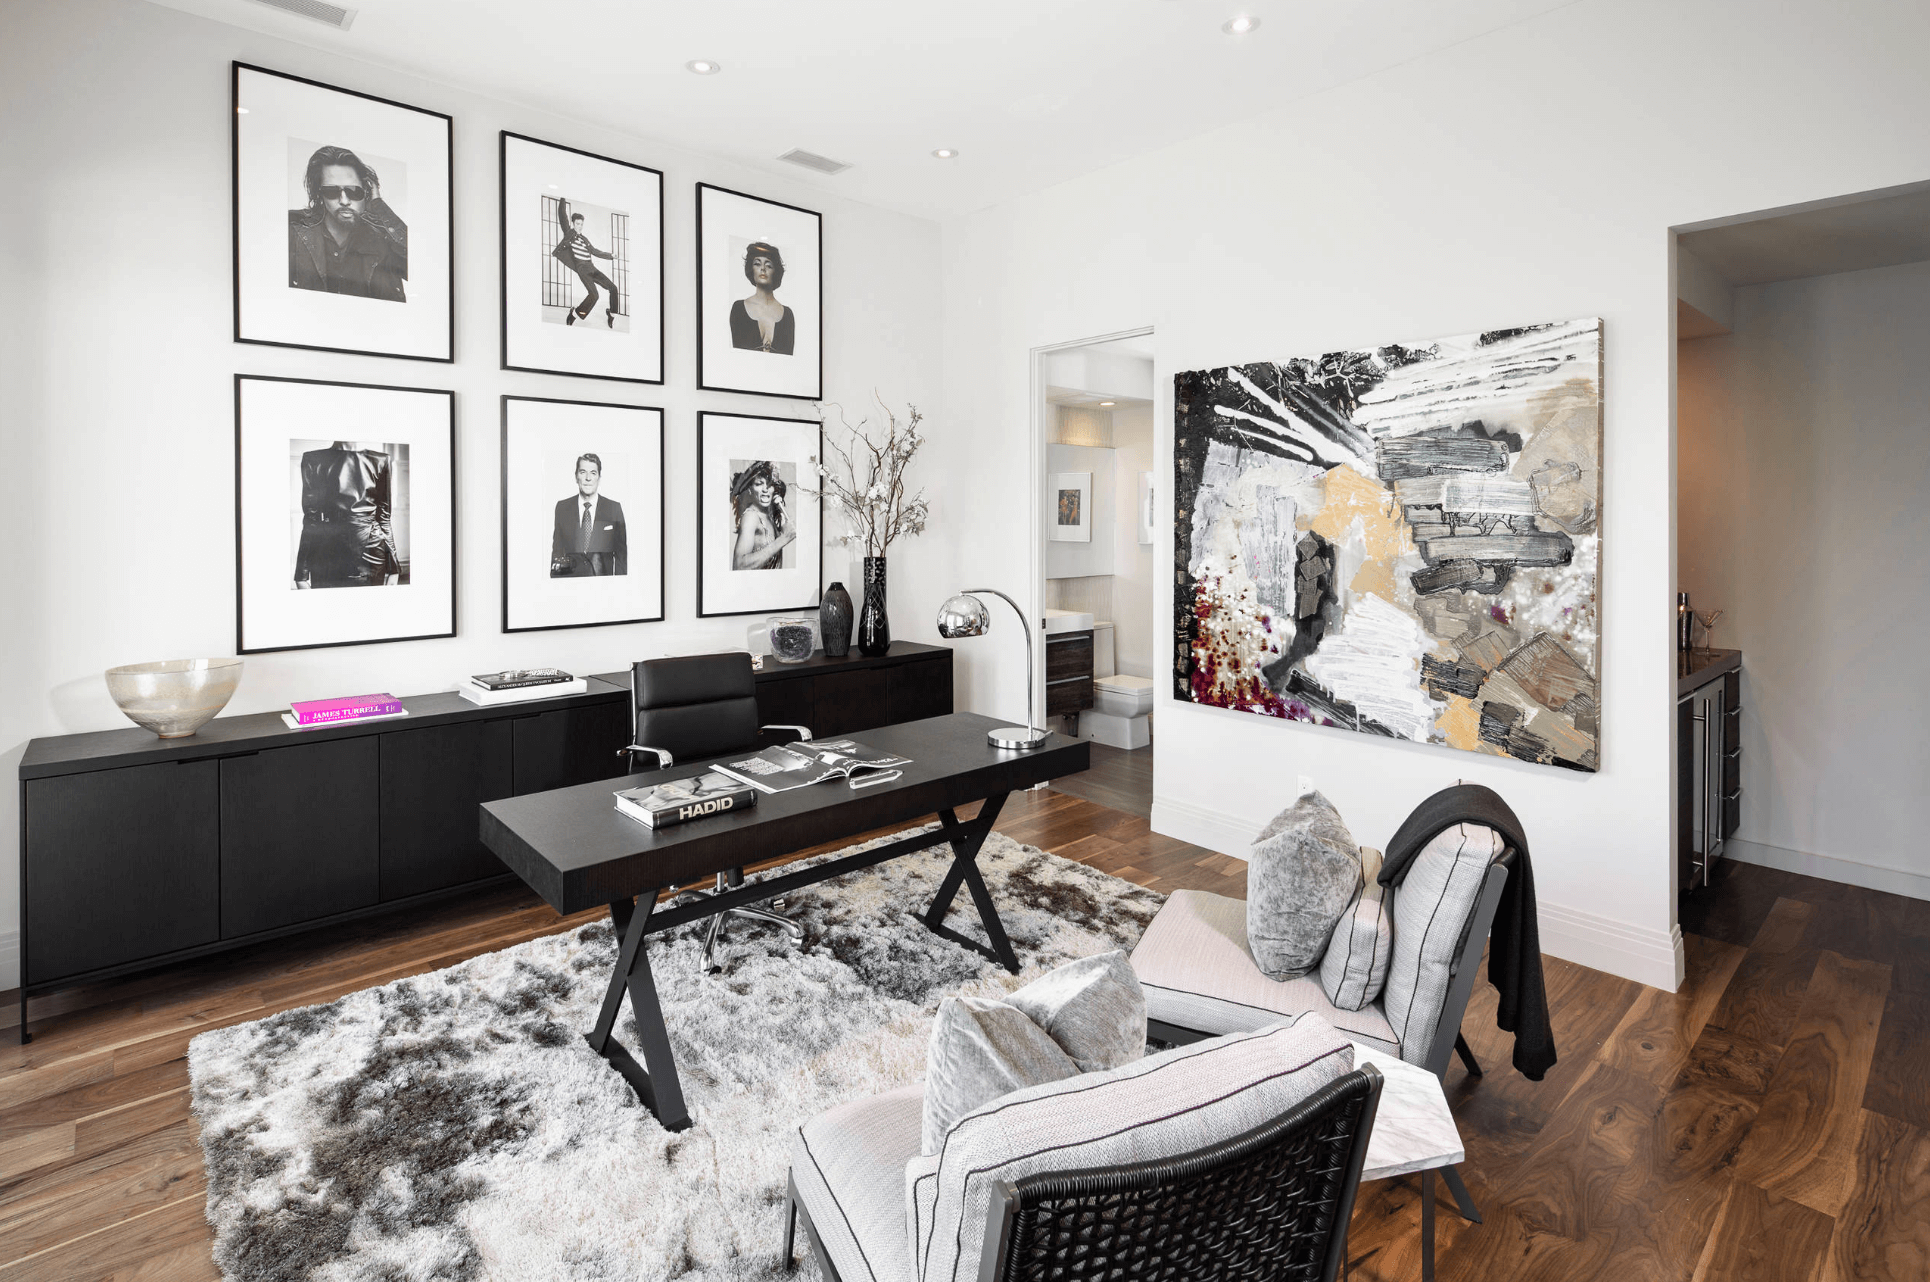 Contemporary Home Office Design Ideas: 4 Modern And Chic Ideas For Your Home Office